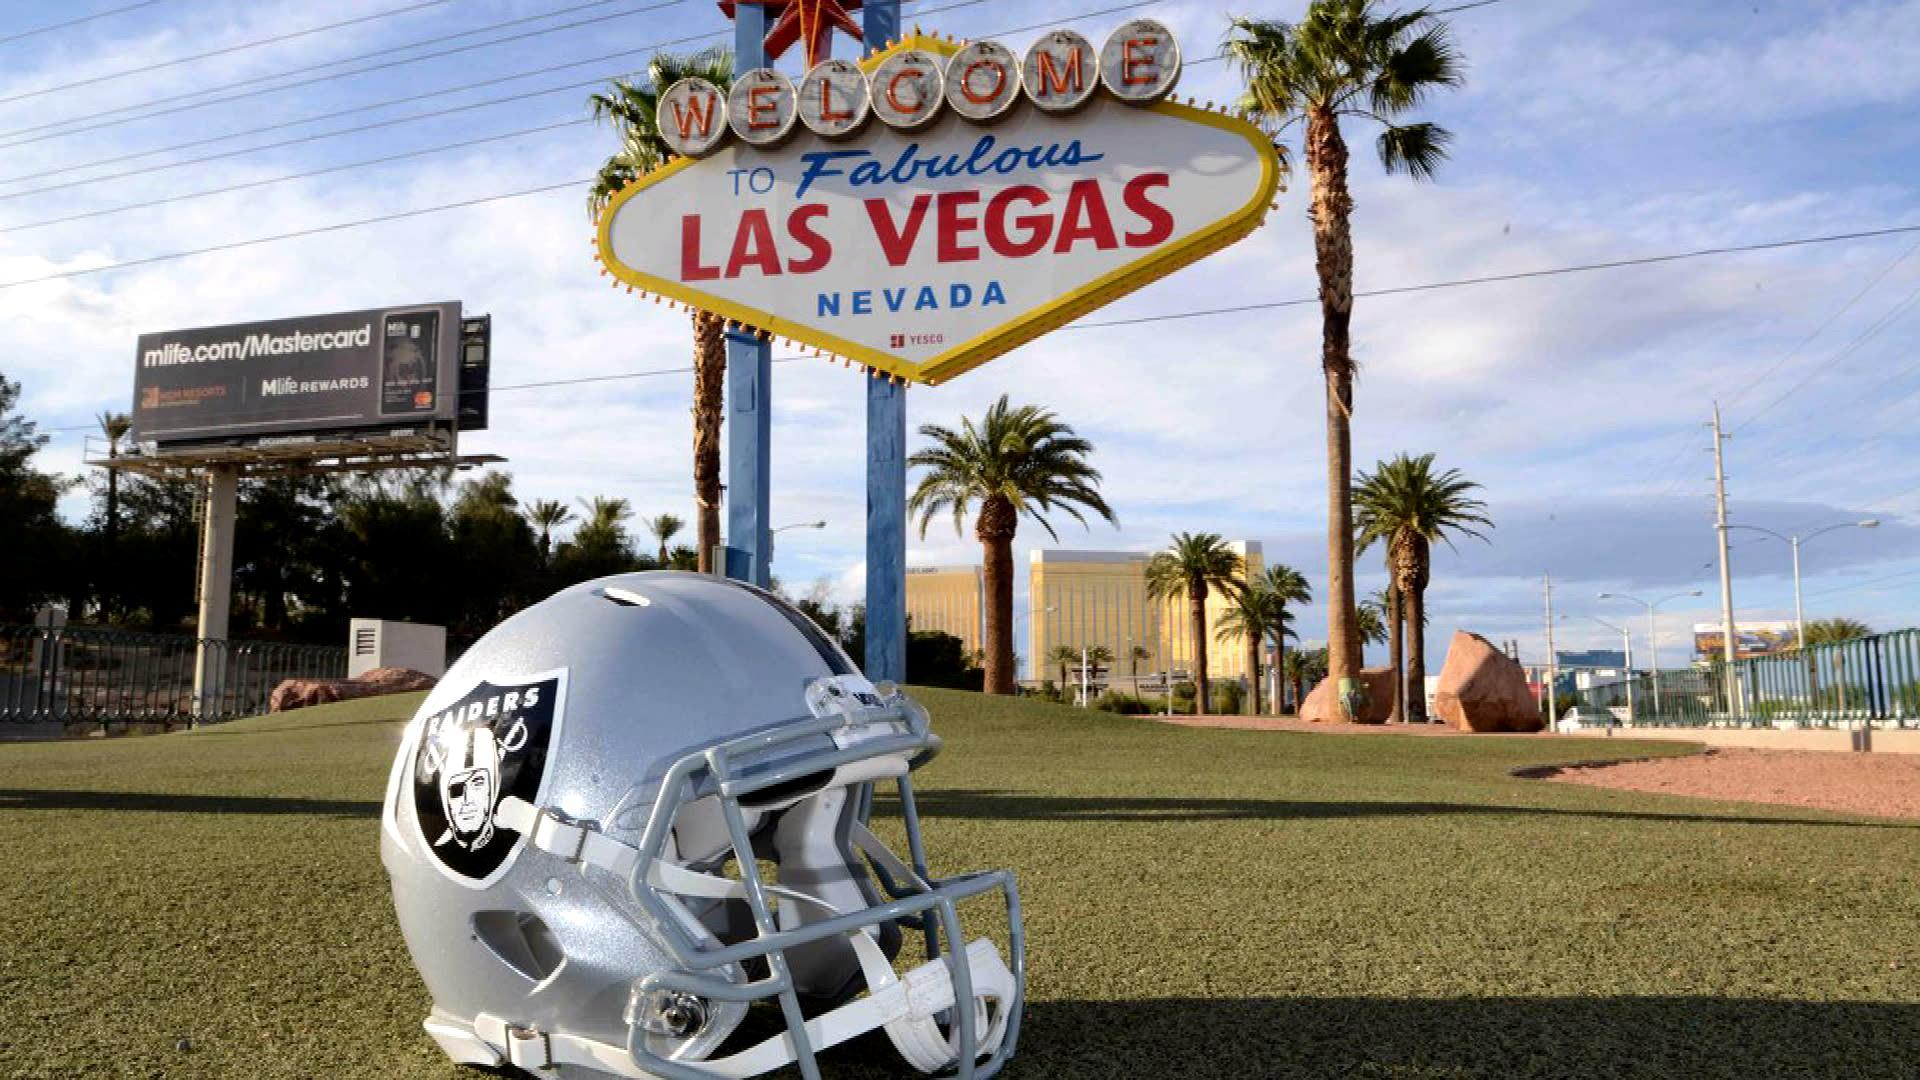 Las Vegas Football